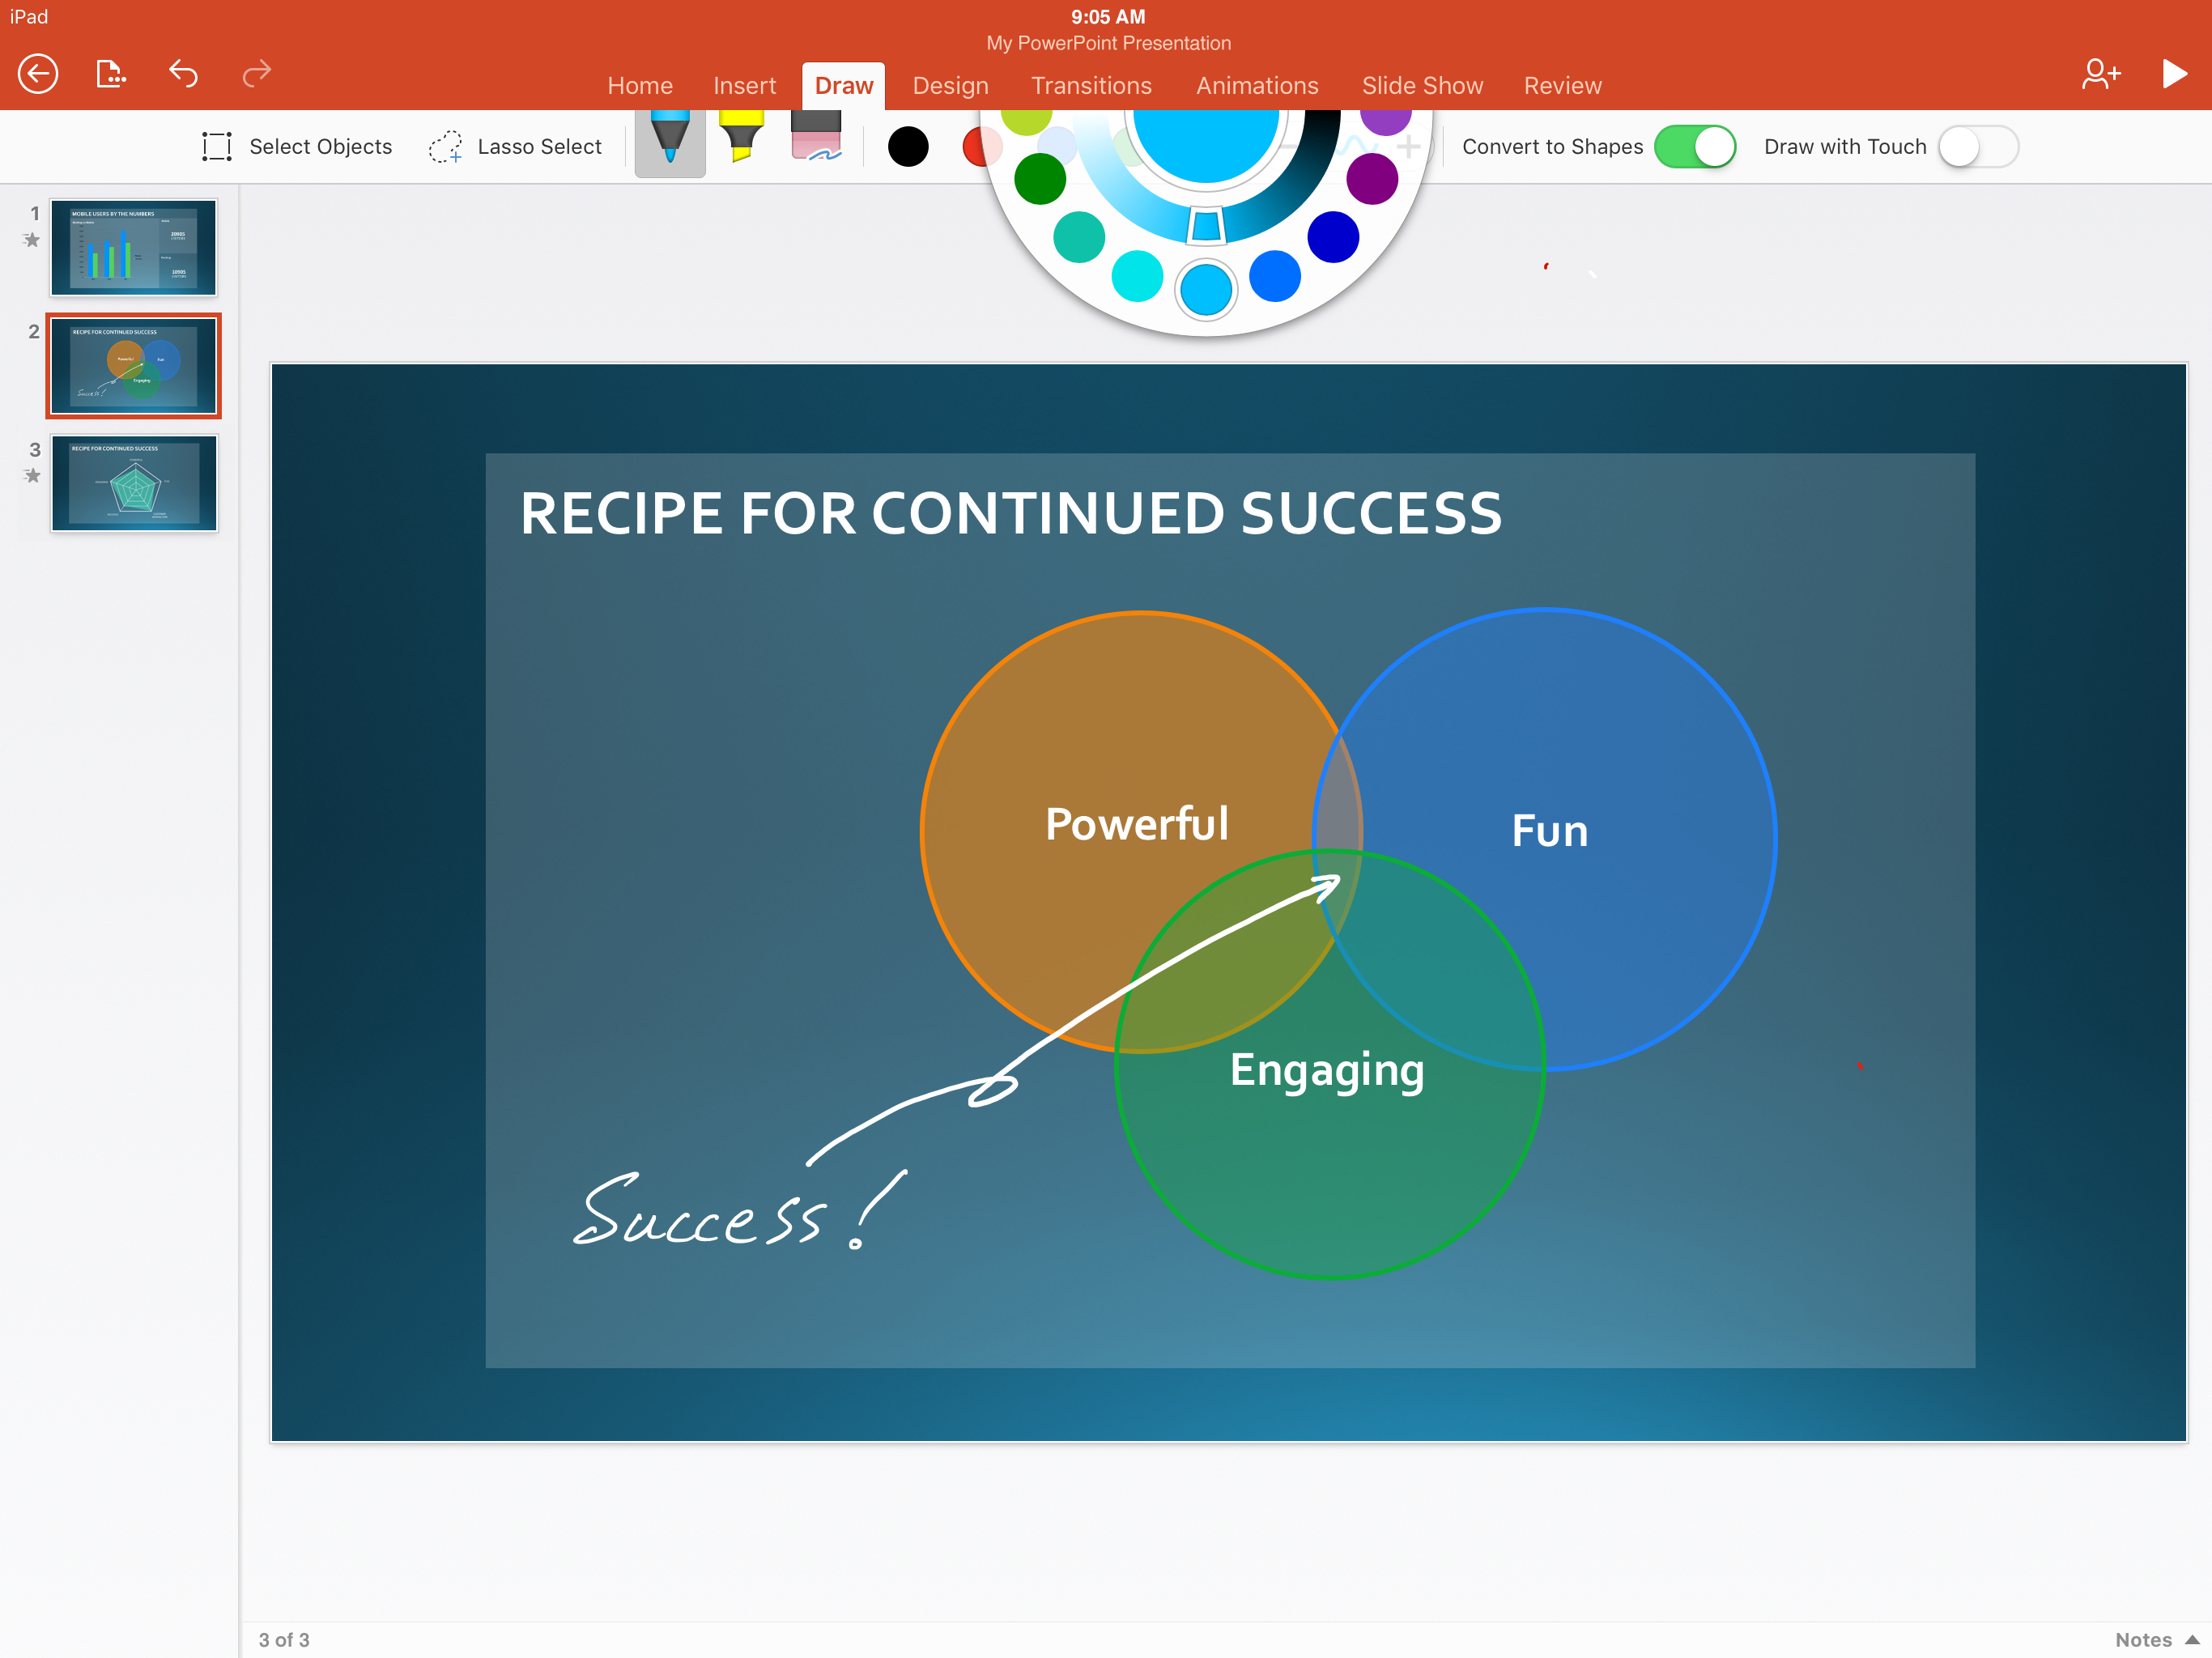 How To Make A Venn Diagram On Word New To Office 365 In Januarynew Inking Tools Collaboration